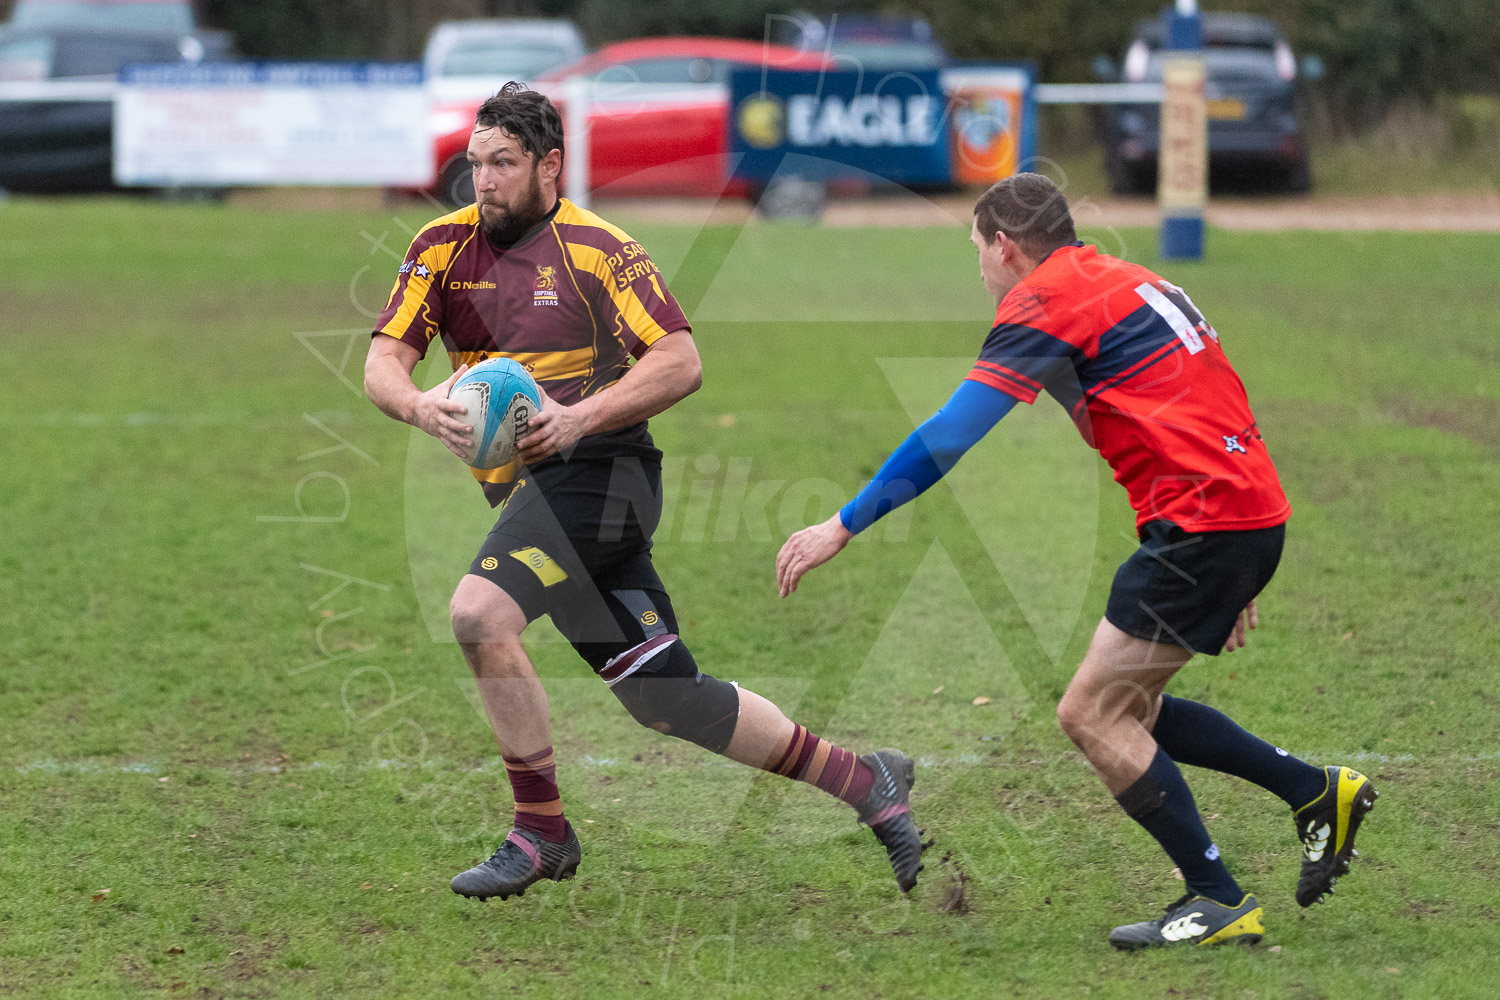 20181027 Amp Extras vs St Neots 2nd XV #2397